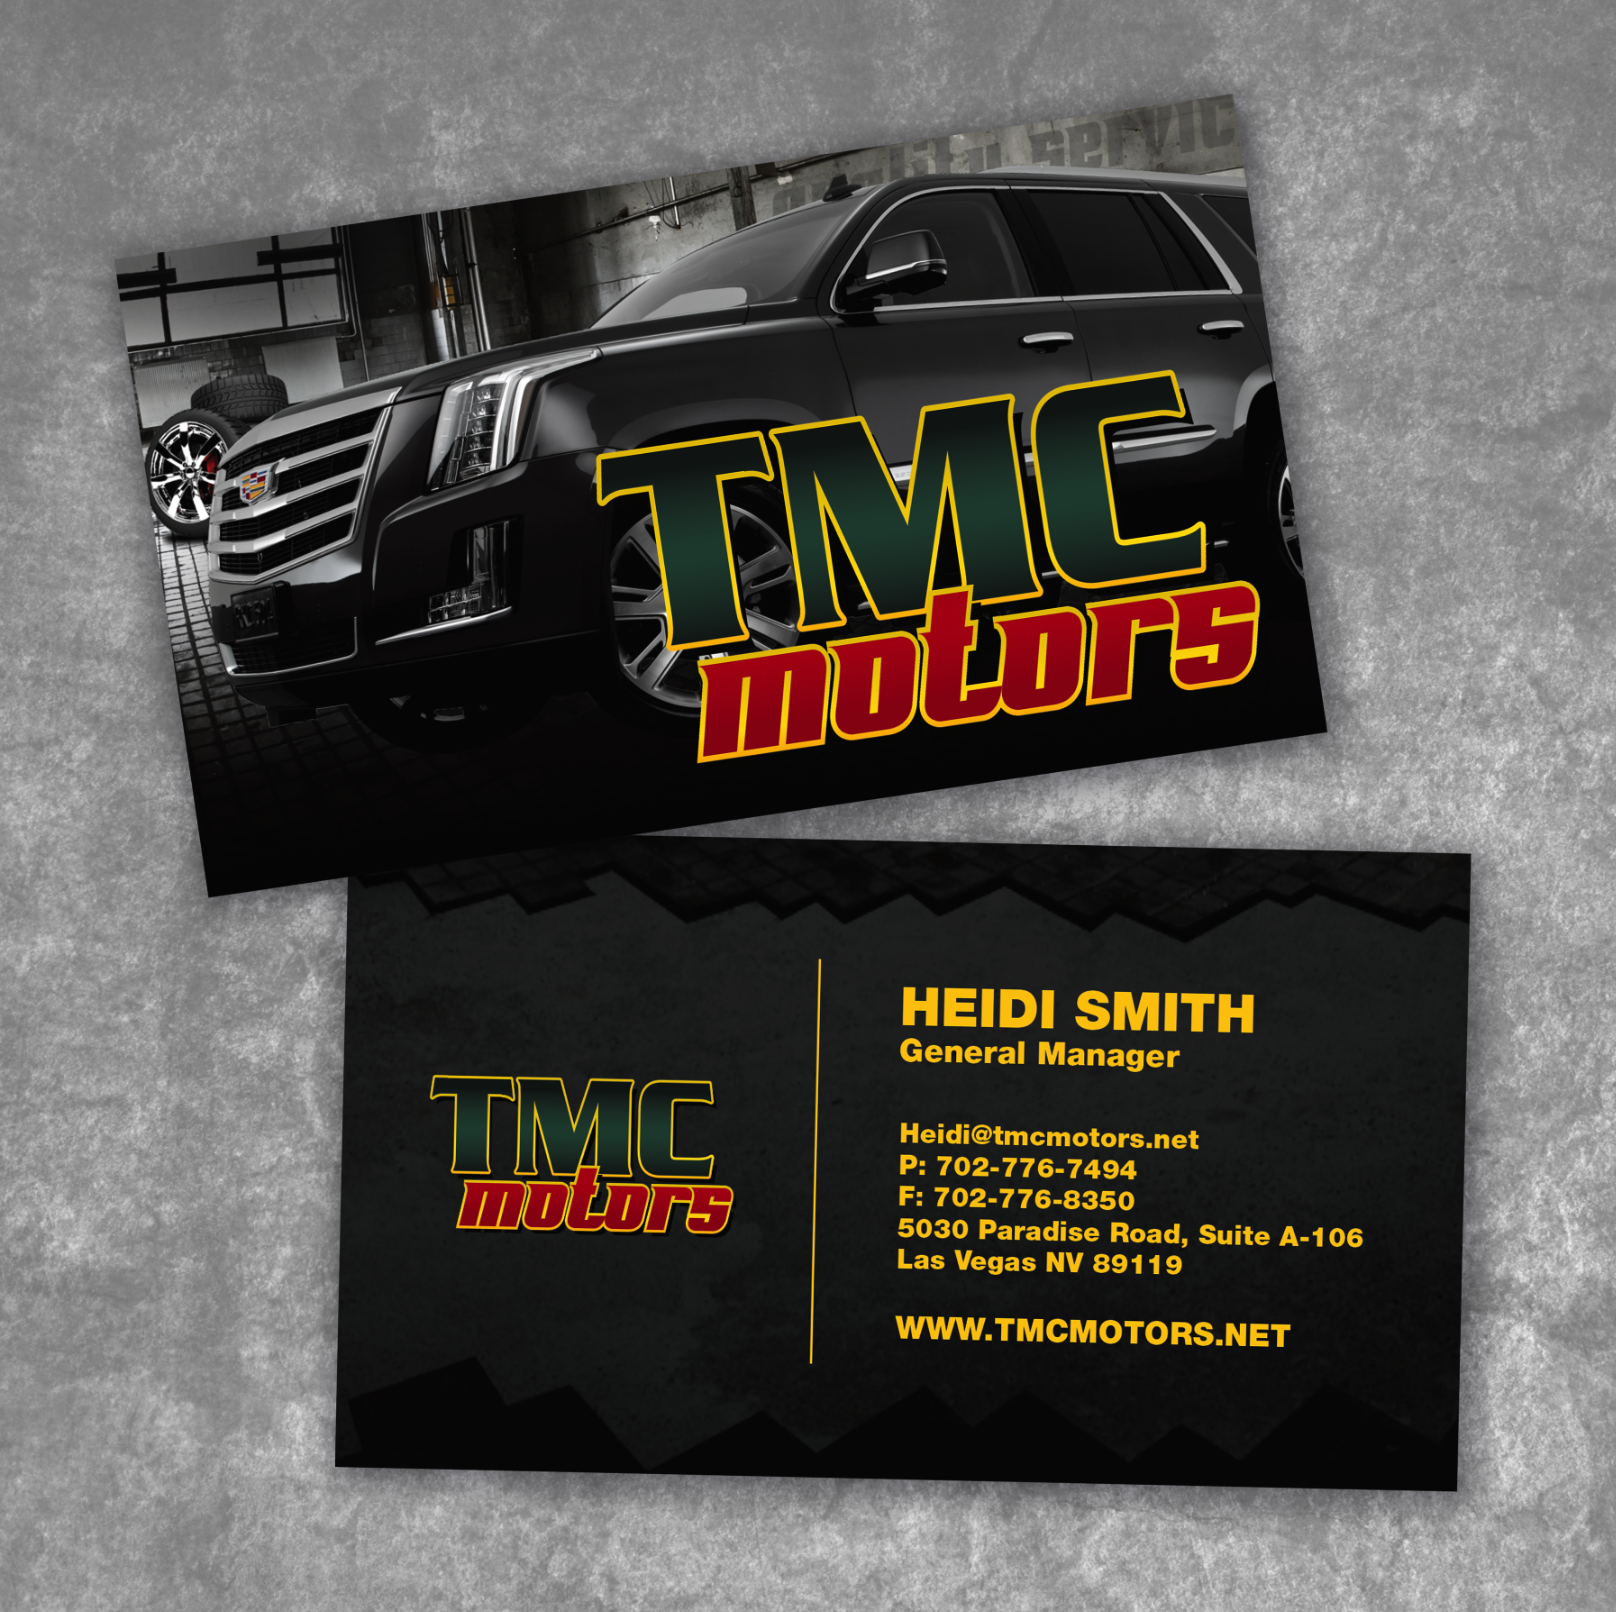 TMC Motor Business Card